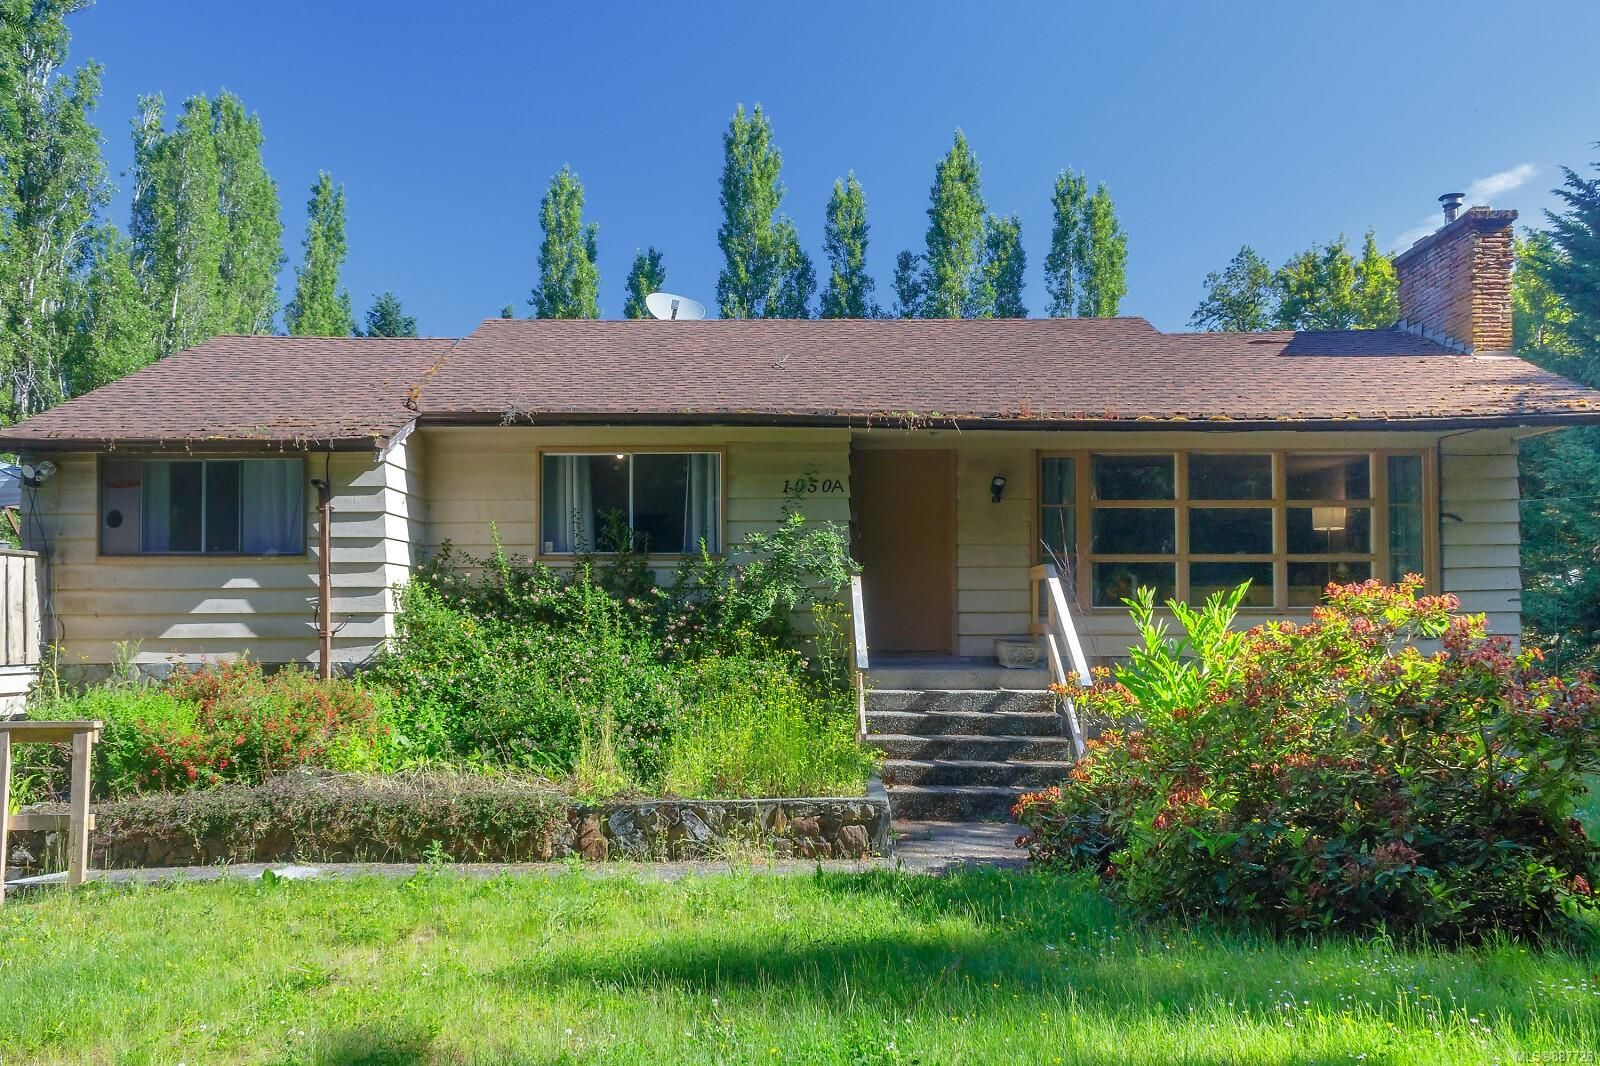 Main Photo: 1050A McTavish Rd in North Saanich: NS Ardmore House for sale : MLS®# 887726